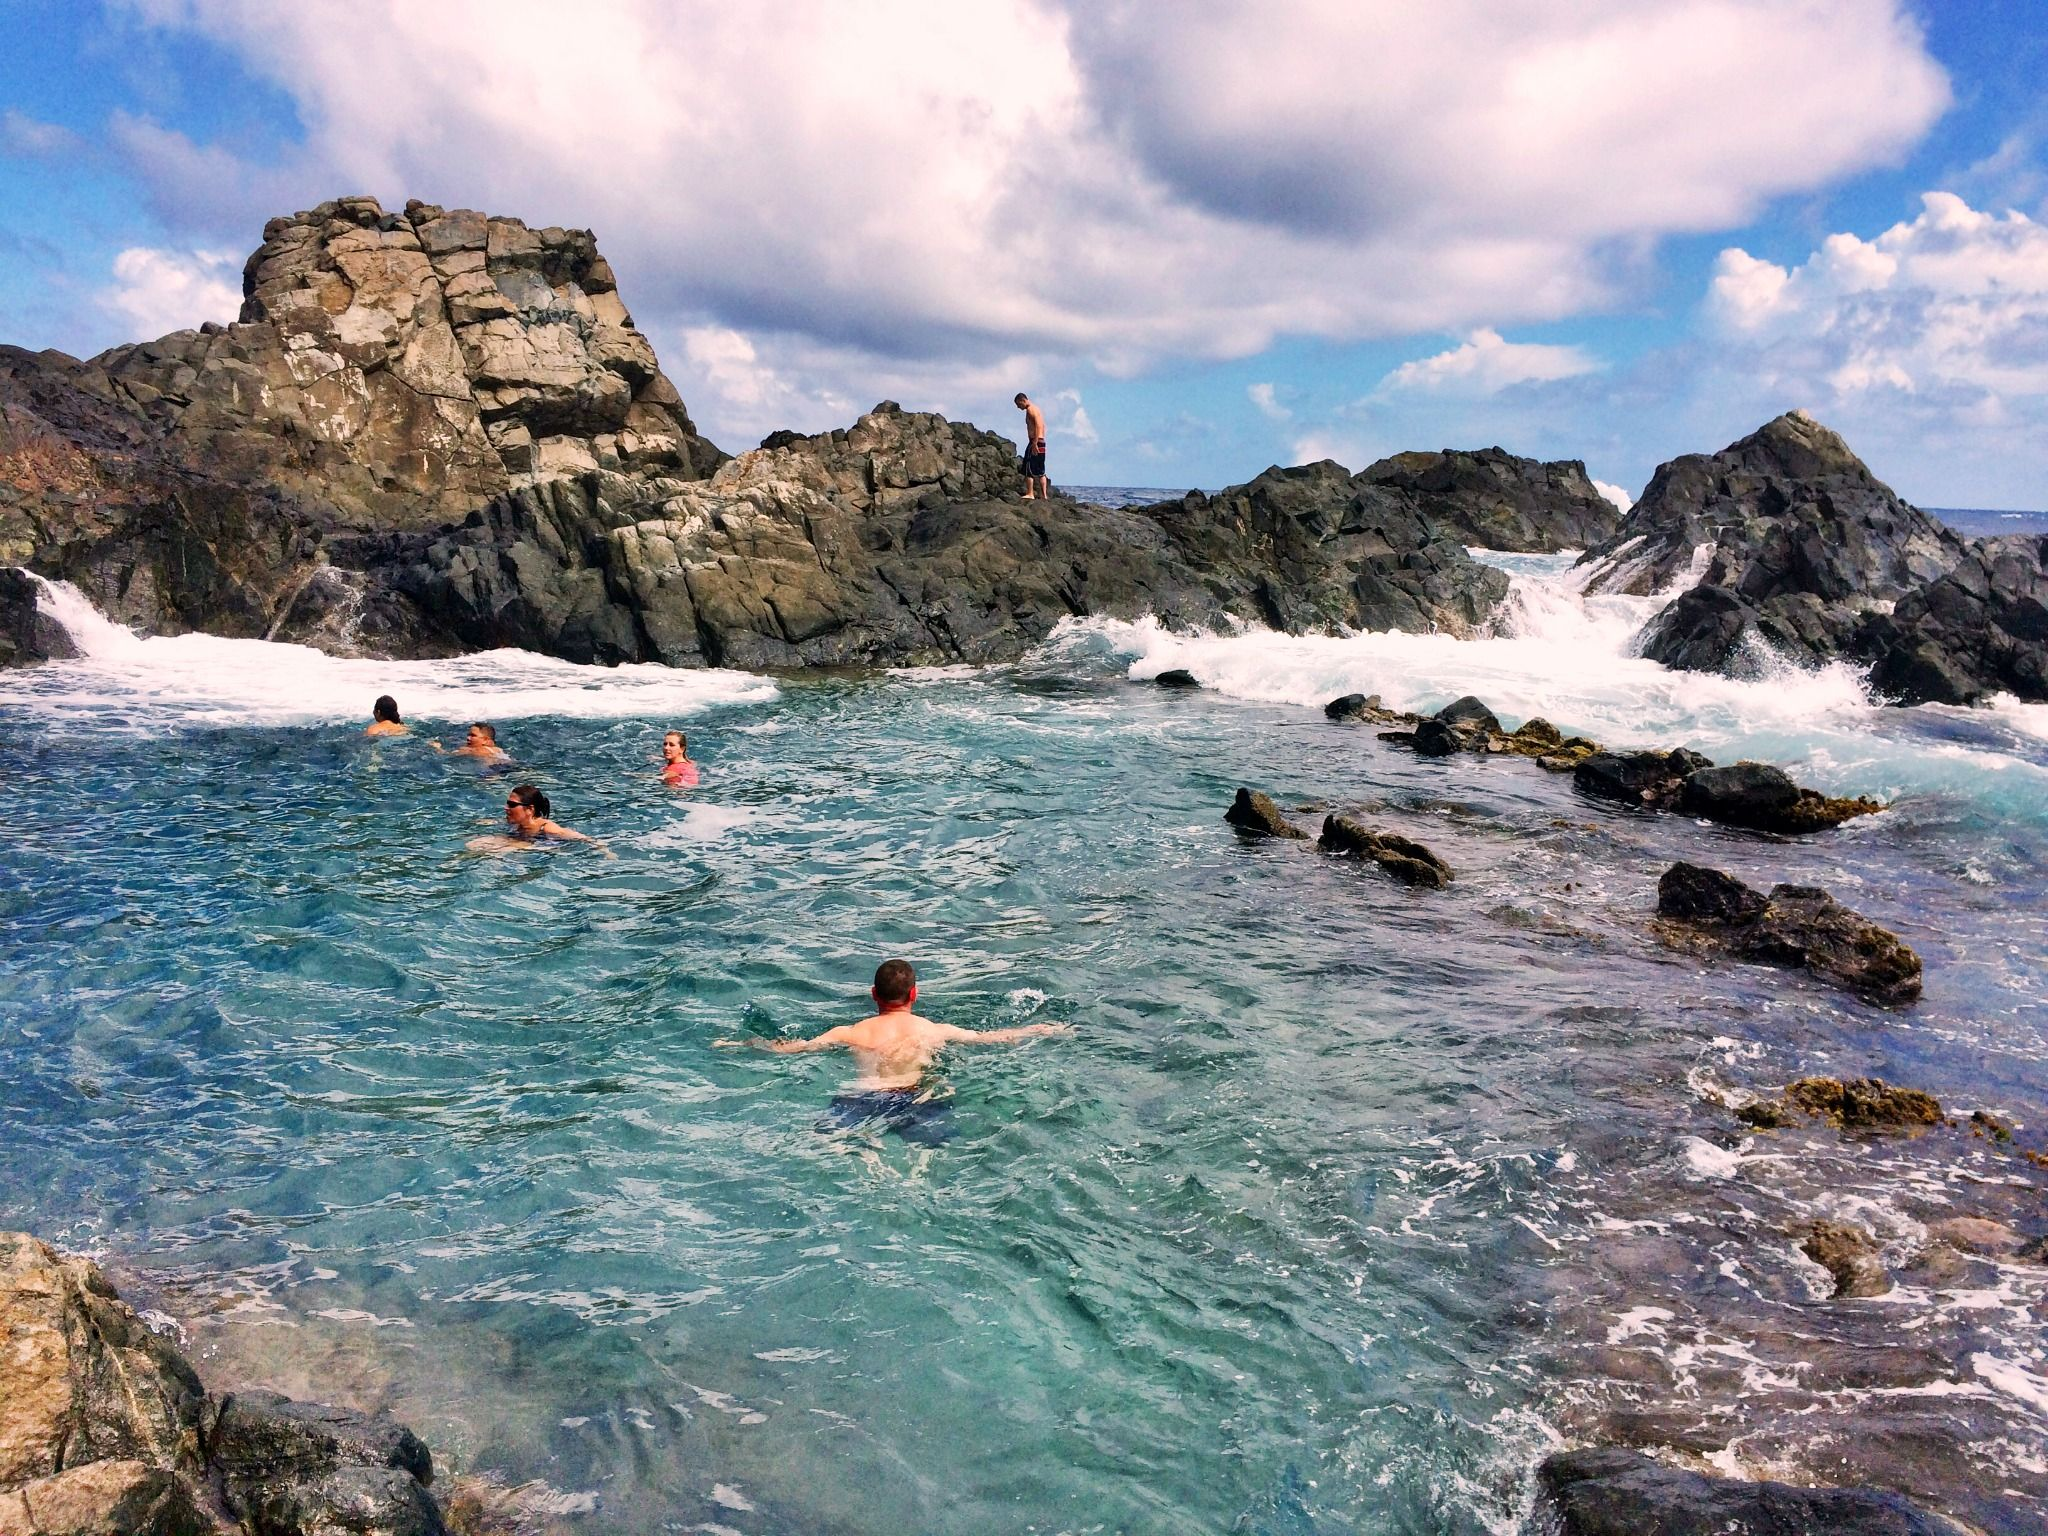 Explore The Beauty Of Caribbean: Rent UTVs To Visit The Natural Pool In